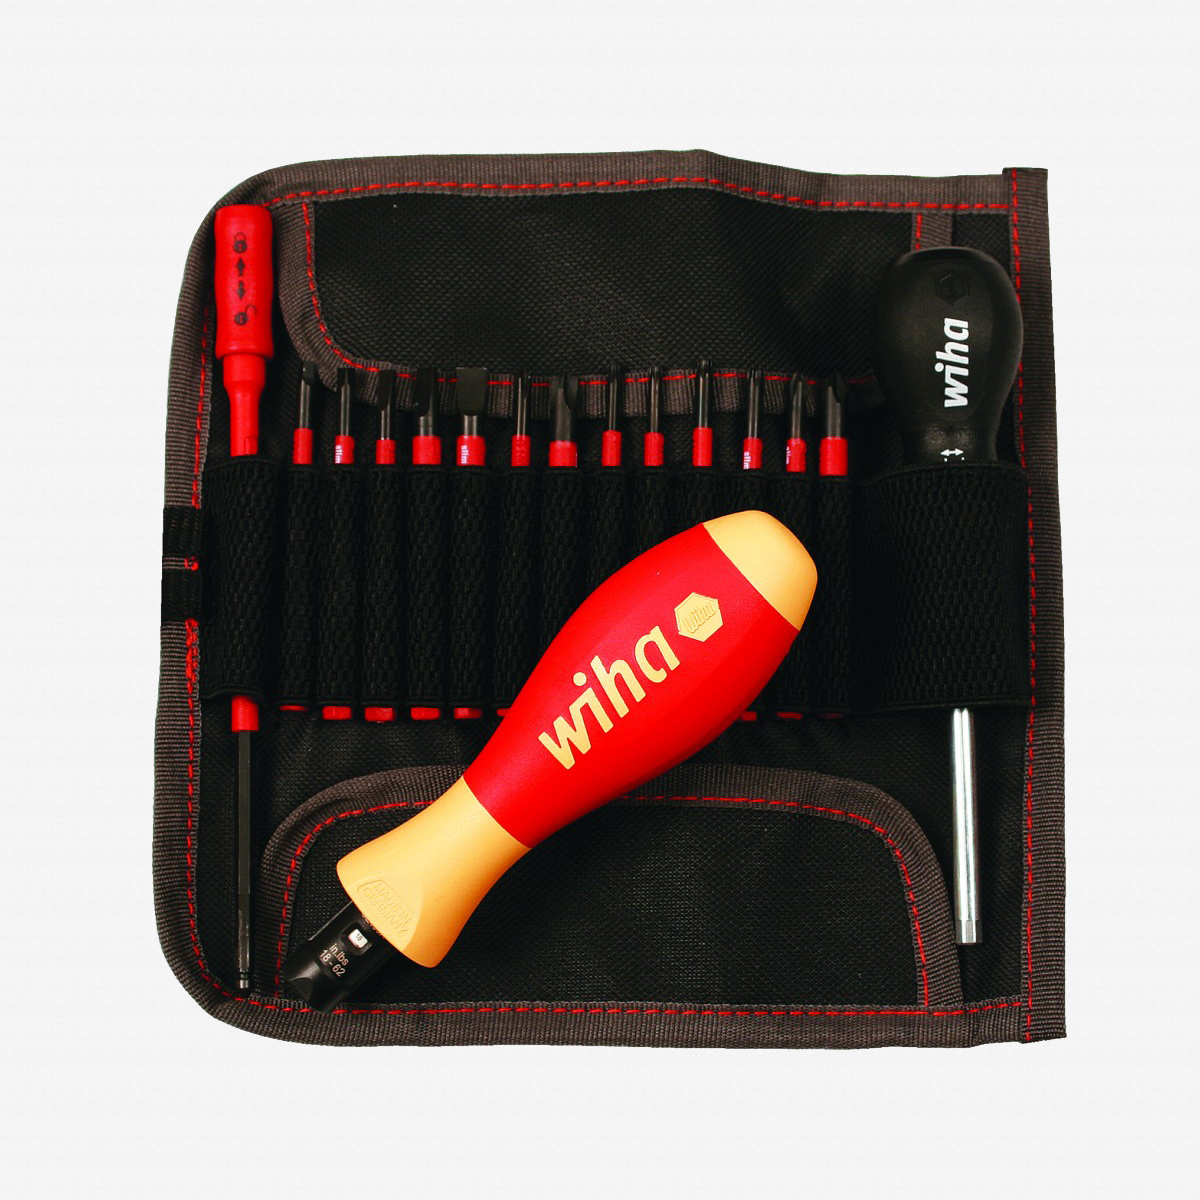 Wiha 28792 16 Piece Insulated Torque Screwdriver Set 18-62 in-lbs. - KC Tool